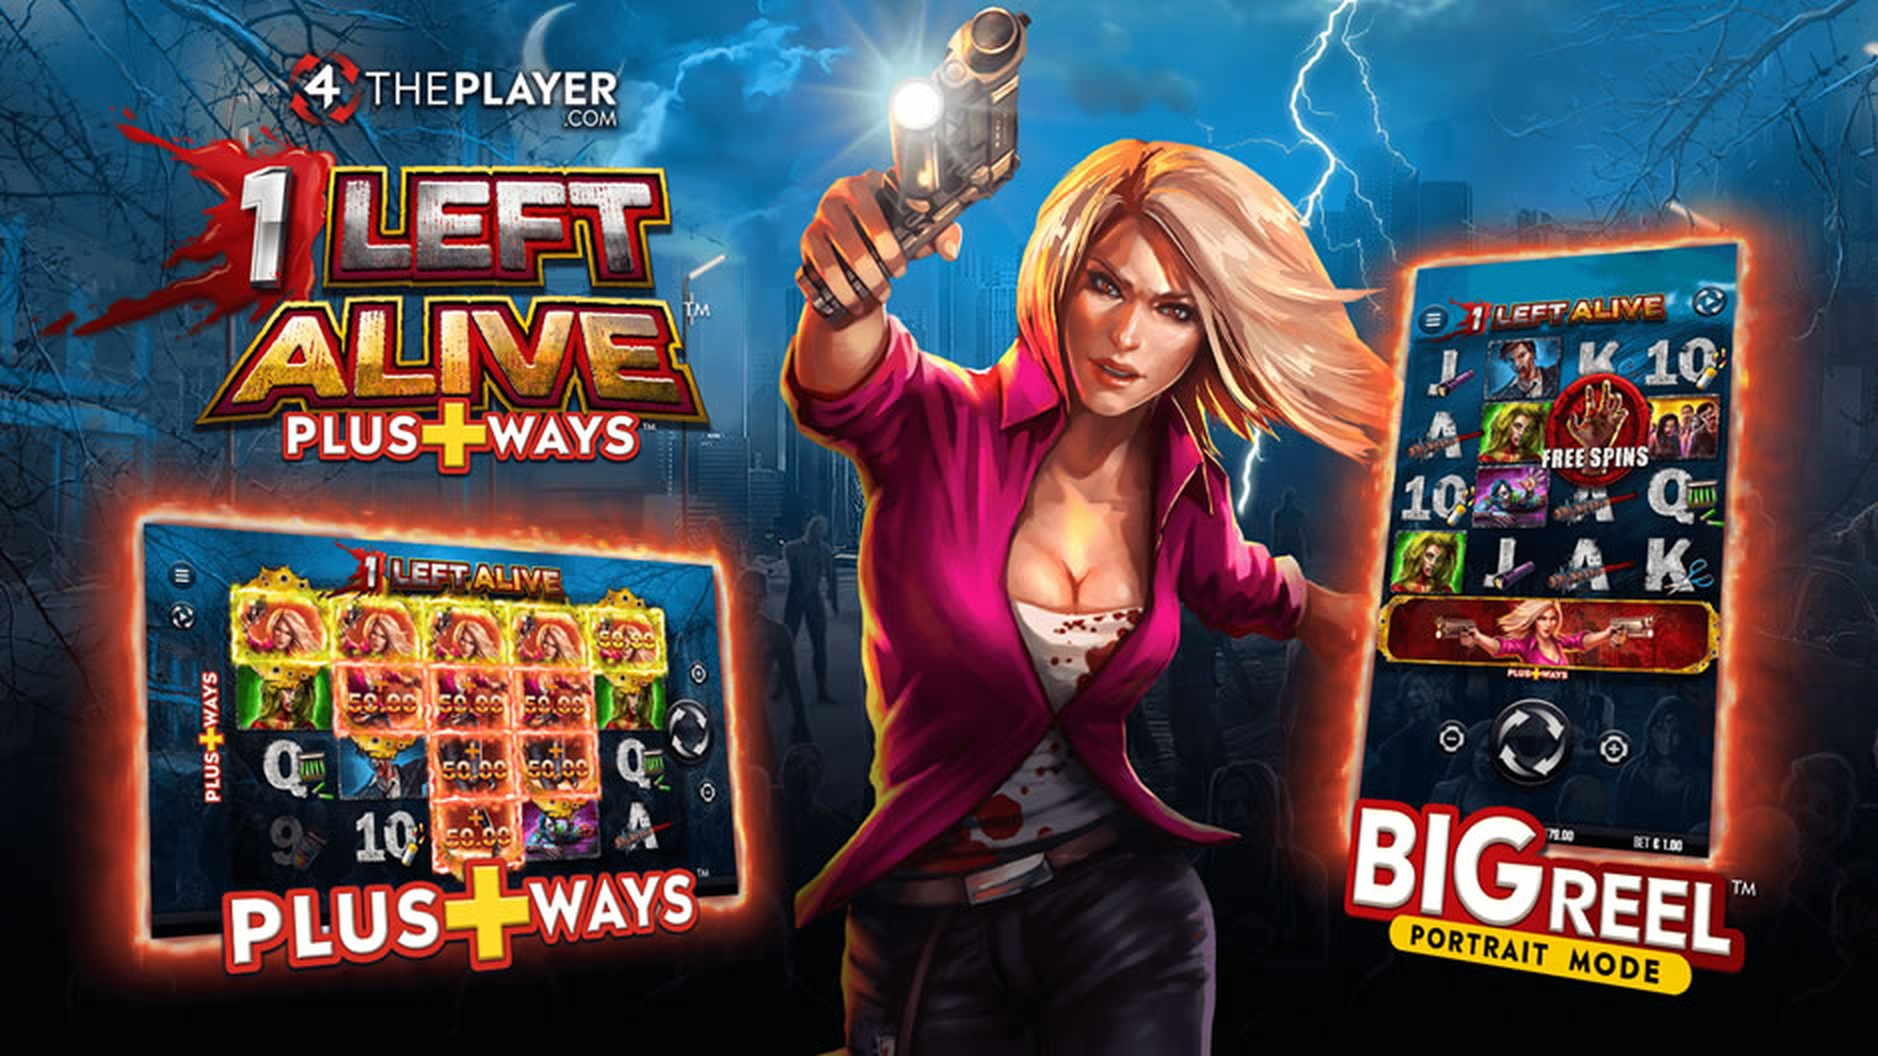 The 1 Left Alive Online Slot Demo Game by 4ThePlayer